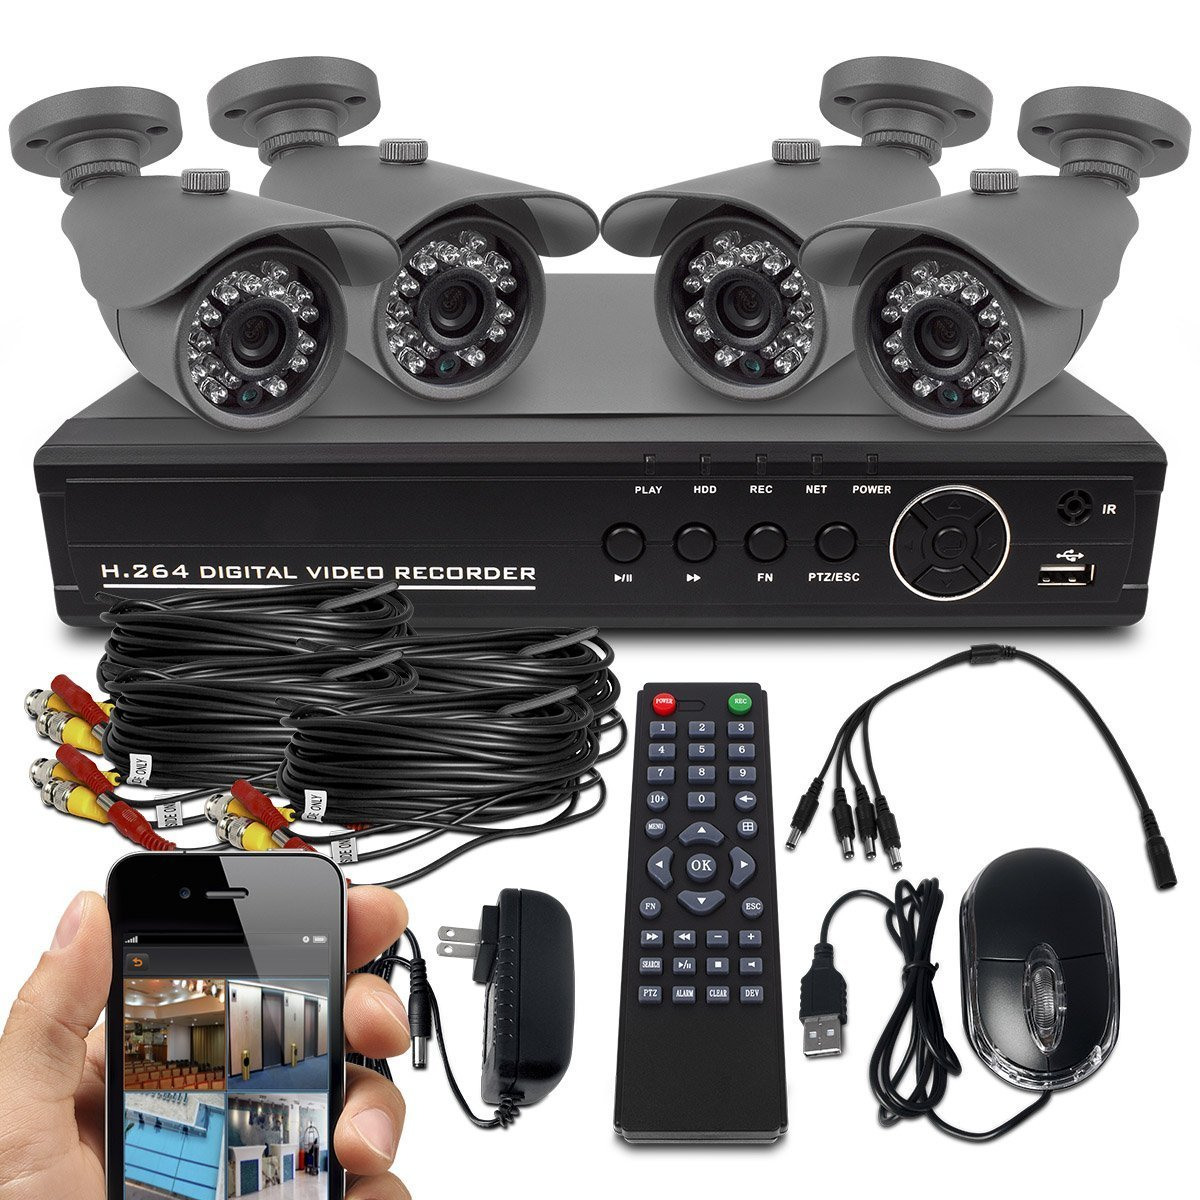 Diy Home Security Cameras Reviews Top 10 Outdoor Security Camera System Reviews Best In 2019